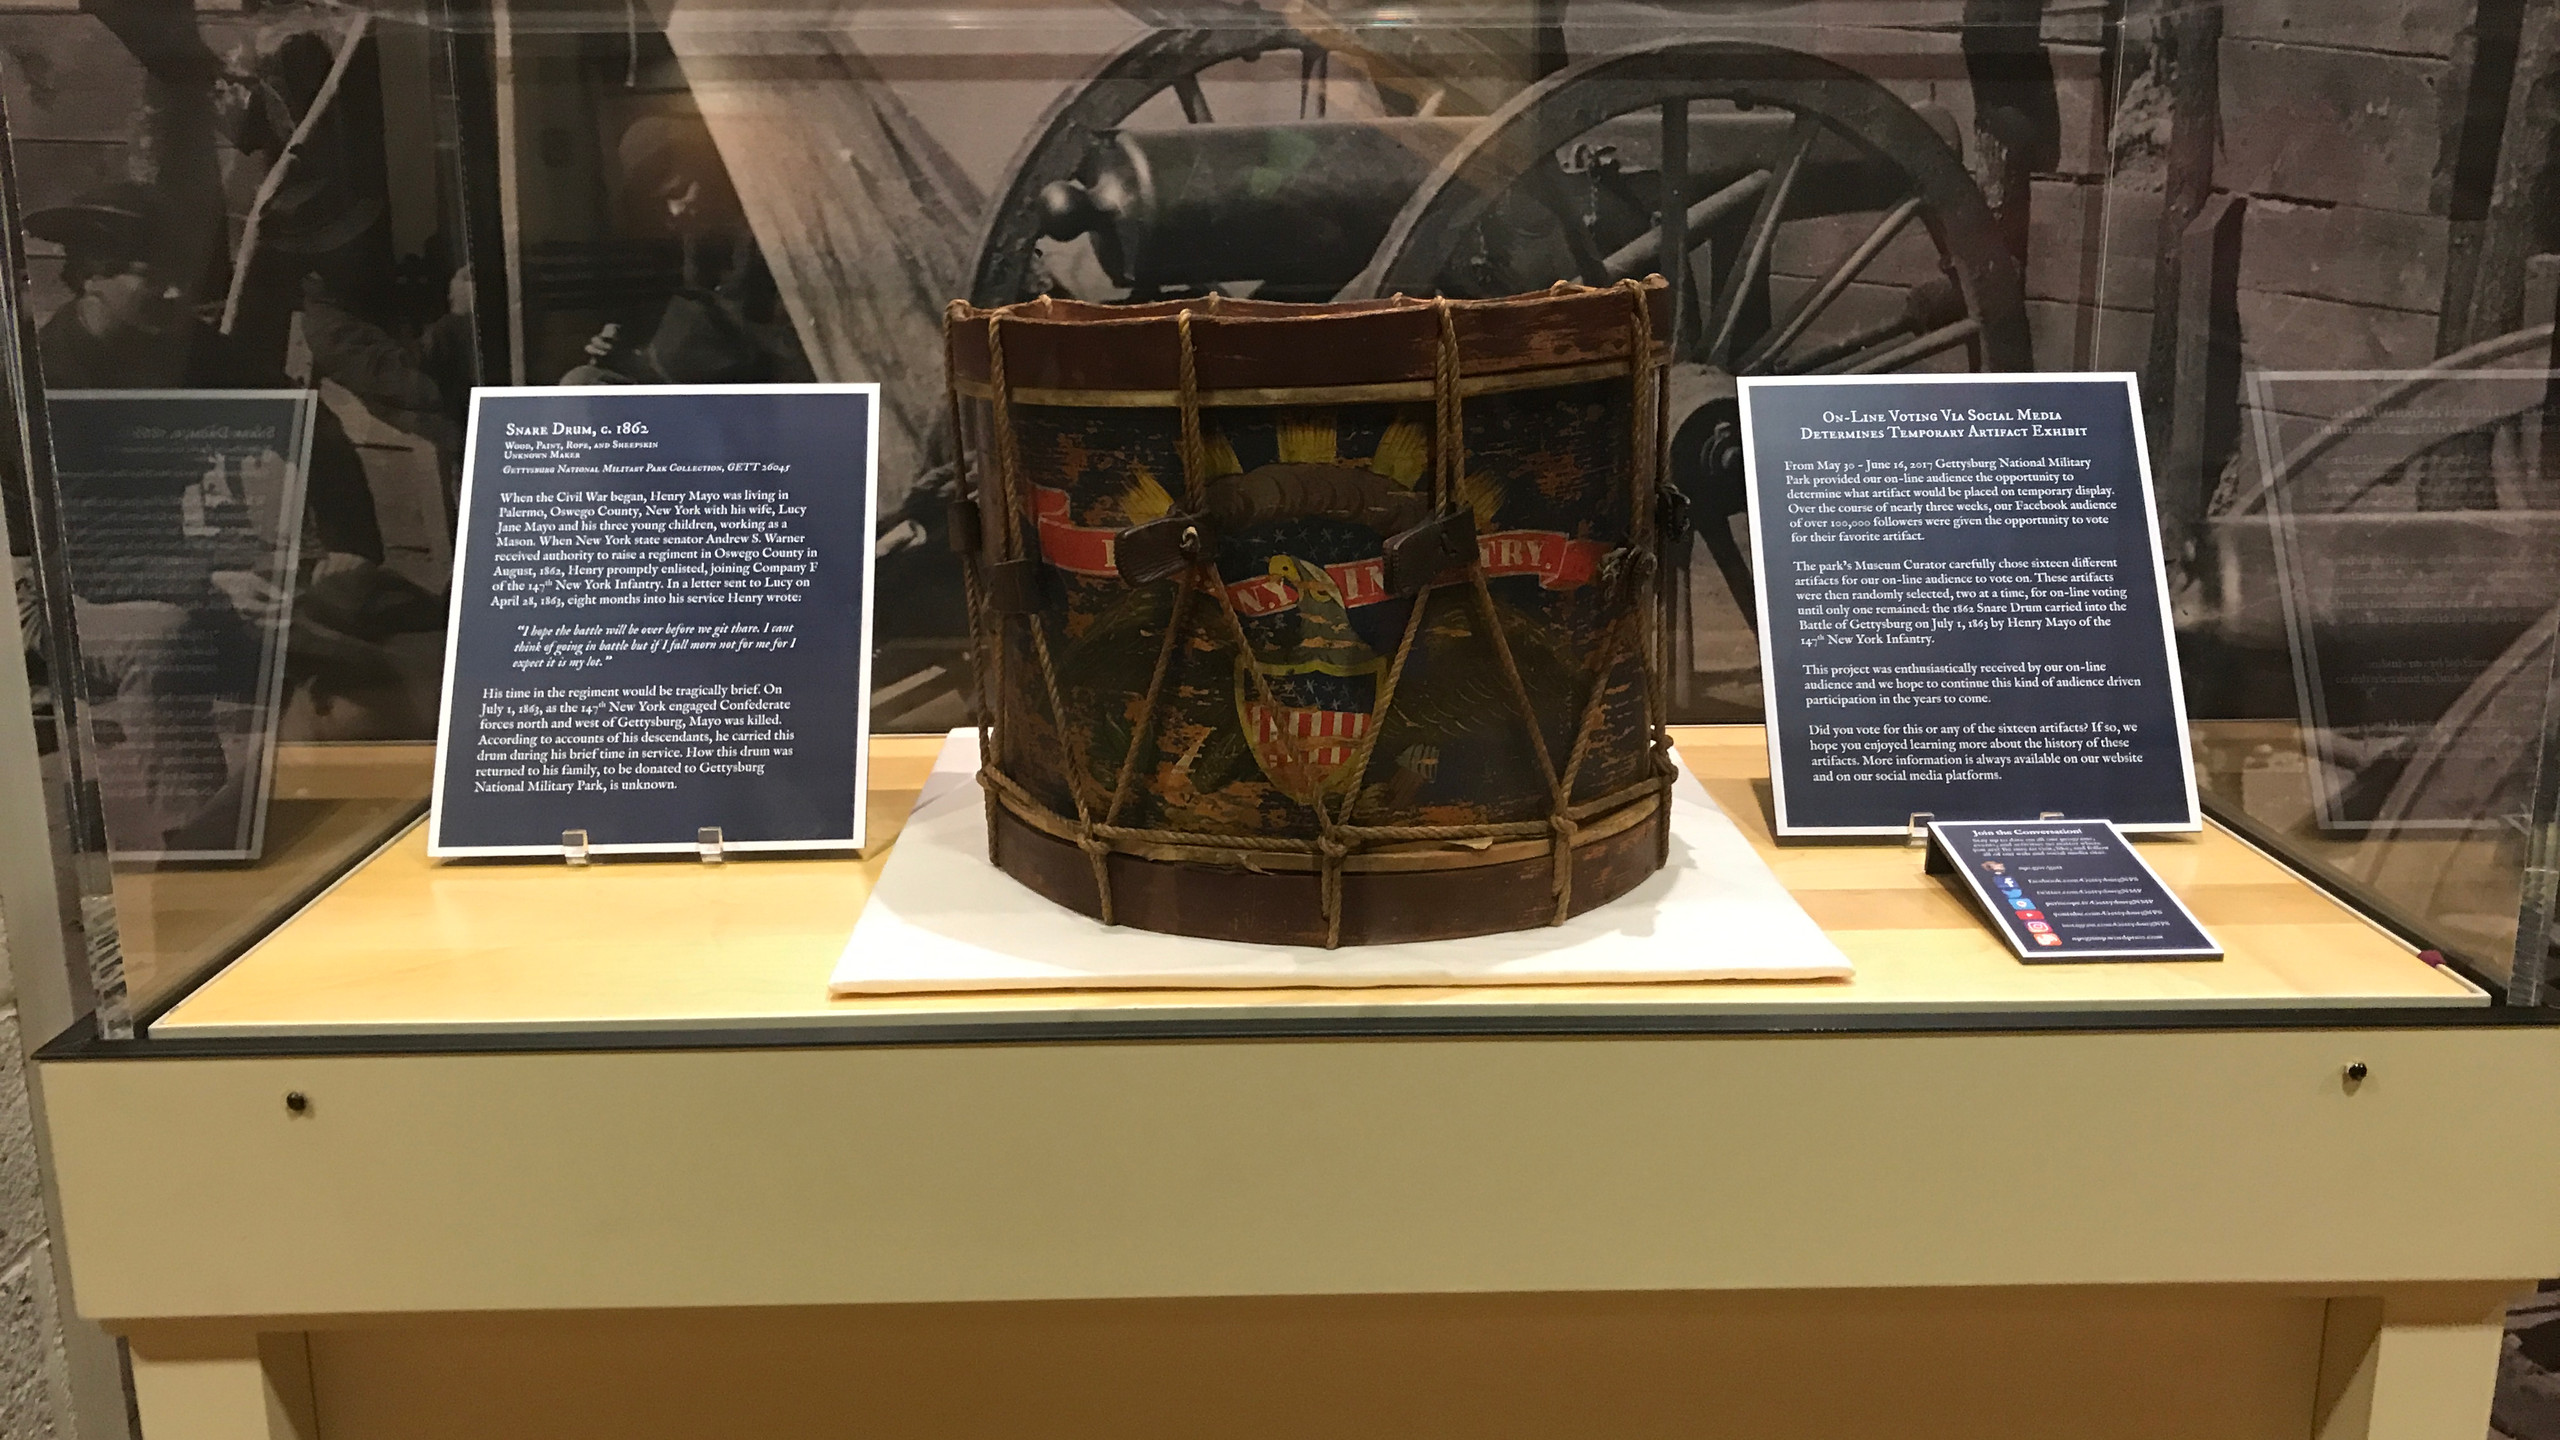 Drum on Display at Visitors Center